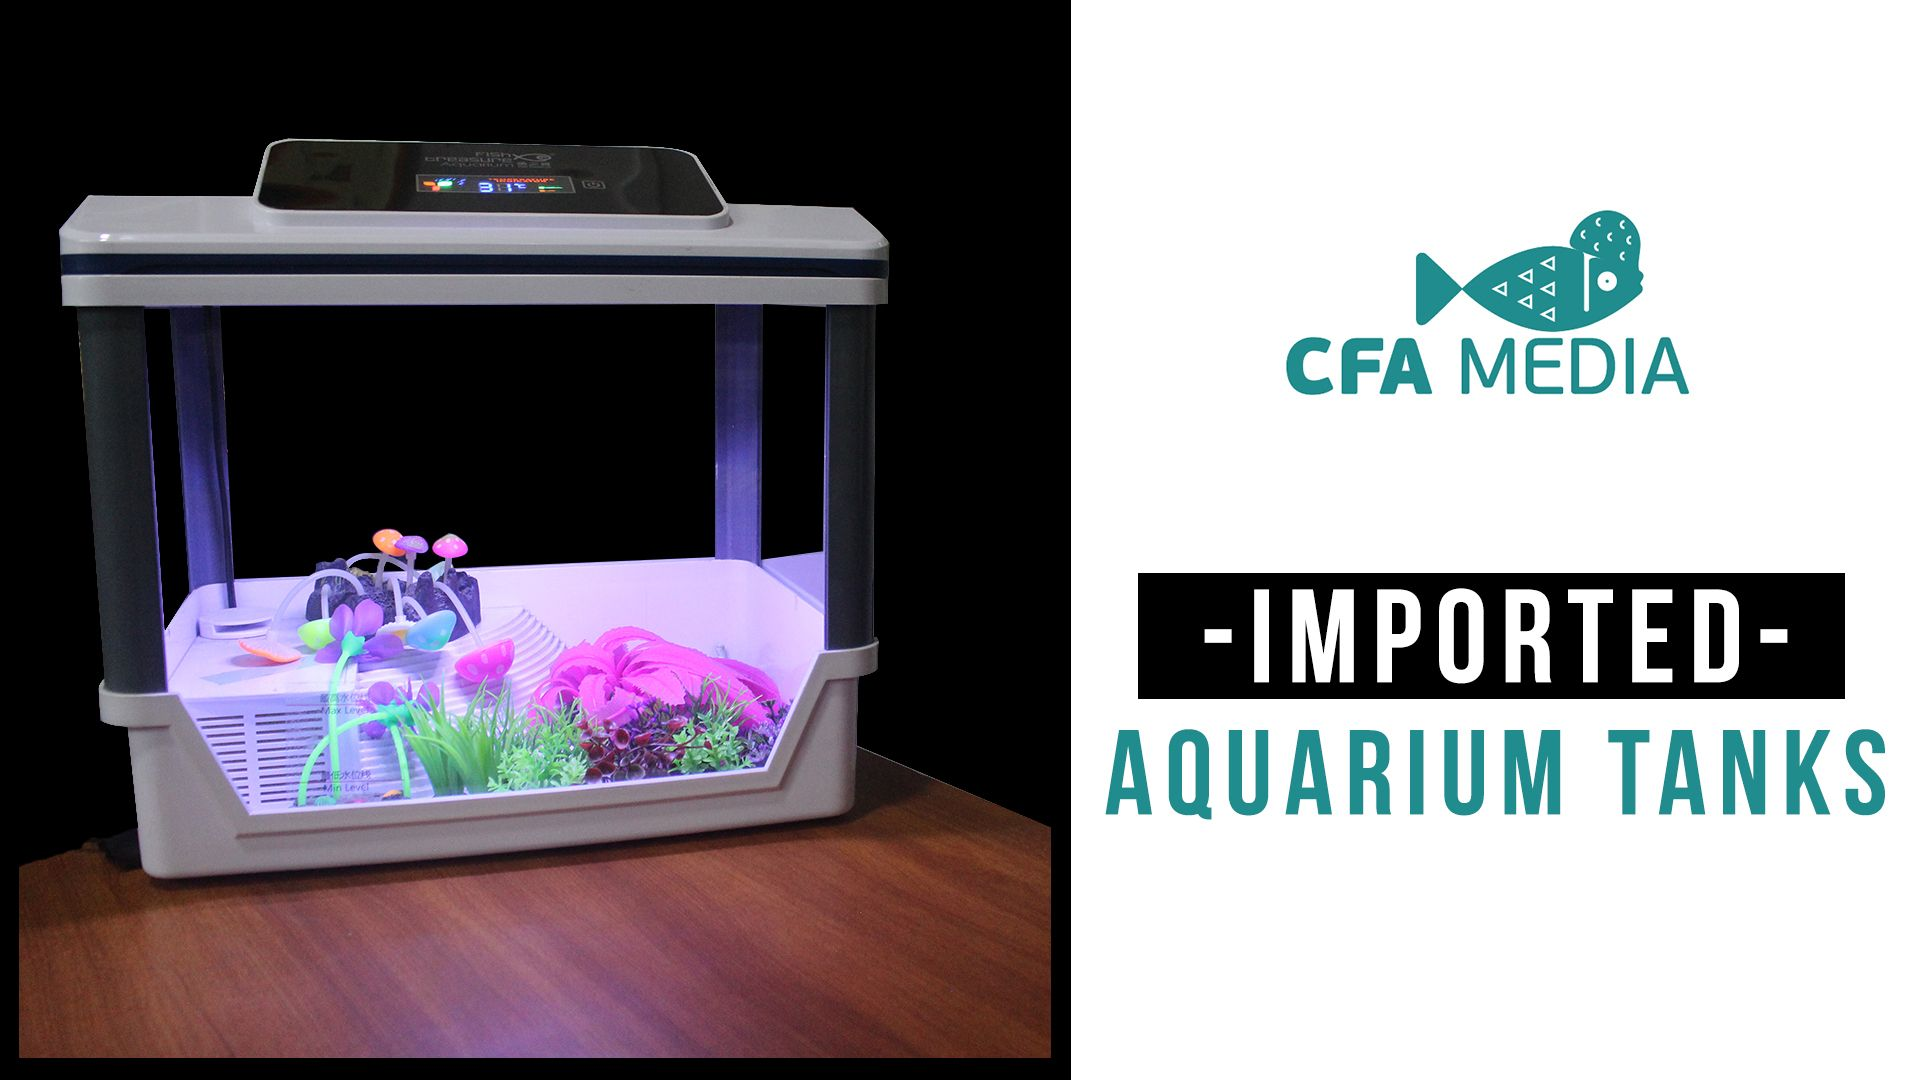 Kolathur Best Imported Aquarium Tanks And Turtle Tanks Stands And Other Food Products Are Available At This Place Vist Onc Turtle Tank Aquarium Turtle